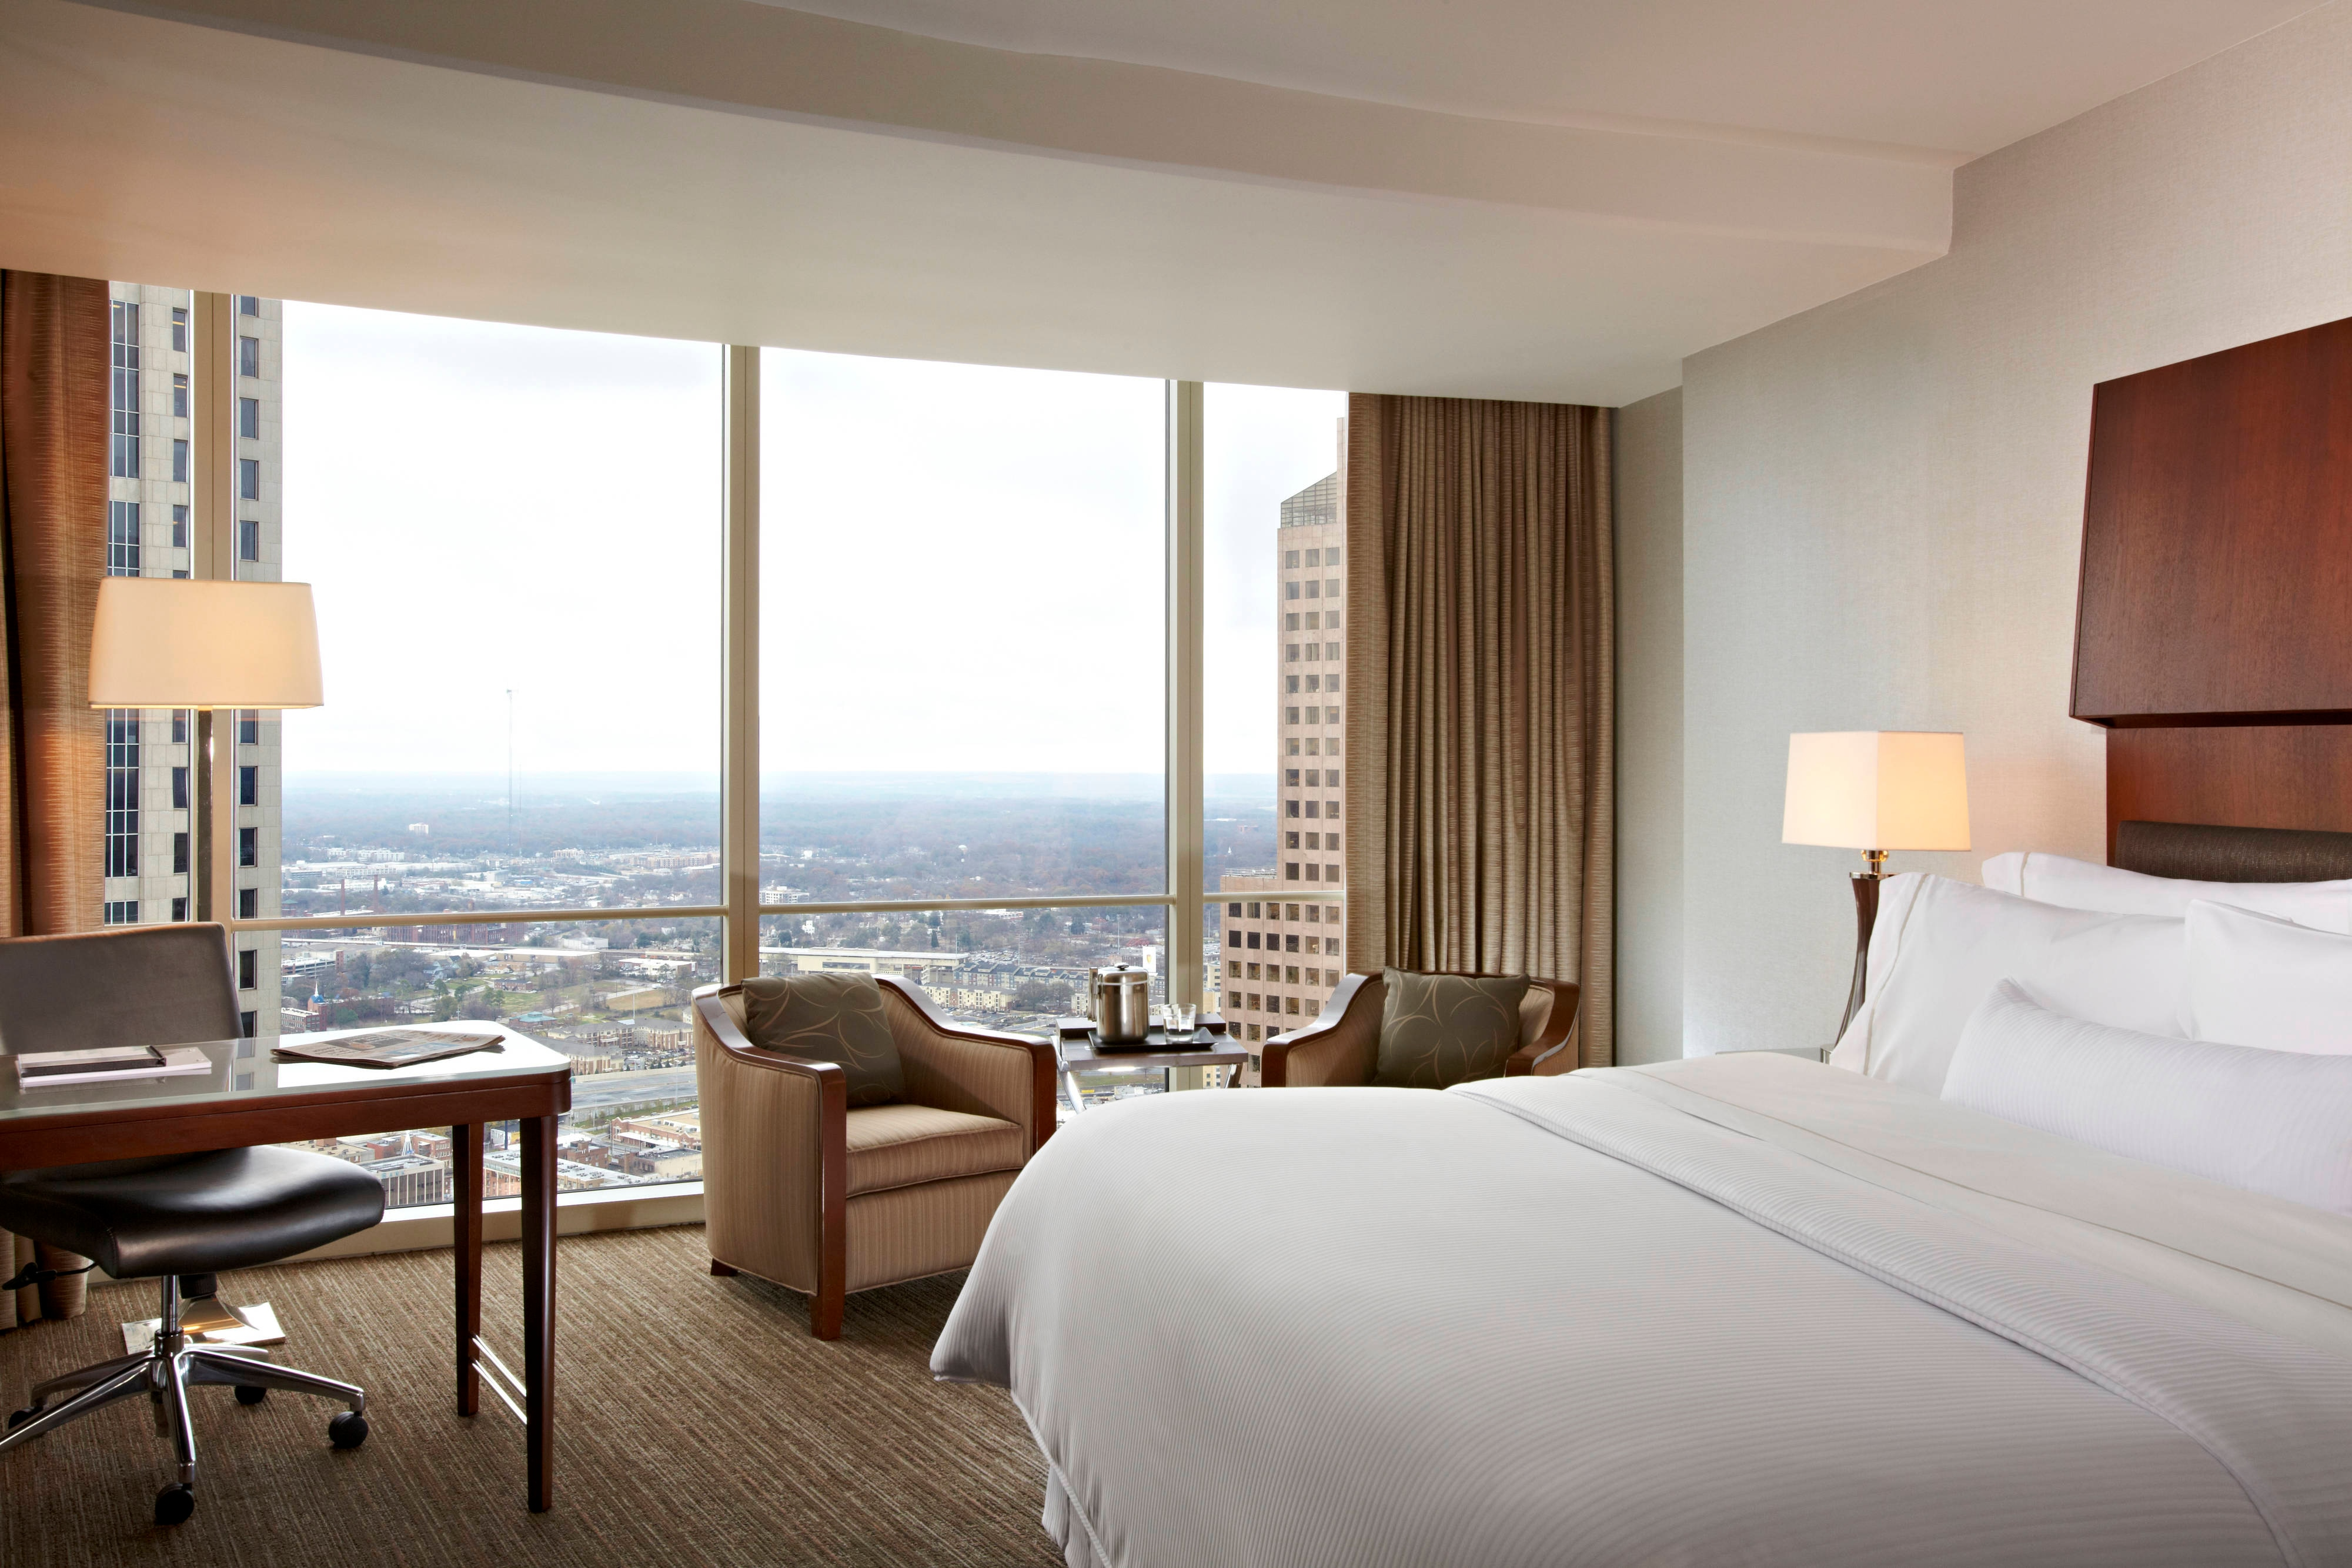 Standard Rooms Low Cost And Confortable In The Center Of: The Westin Peachtree Plaza, Atlanta